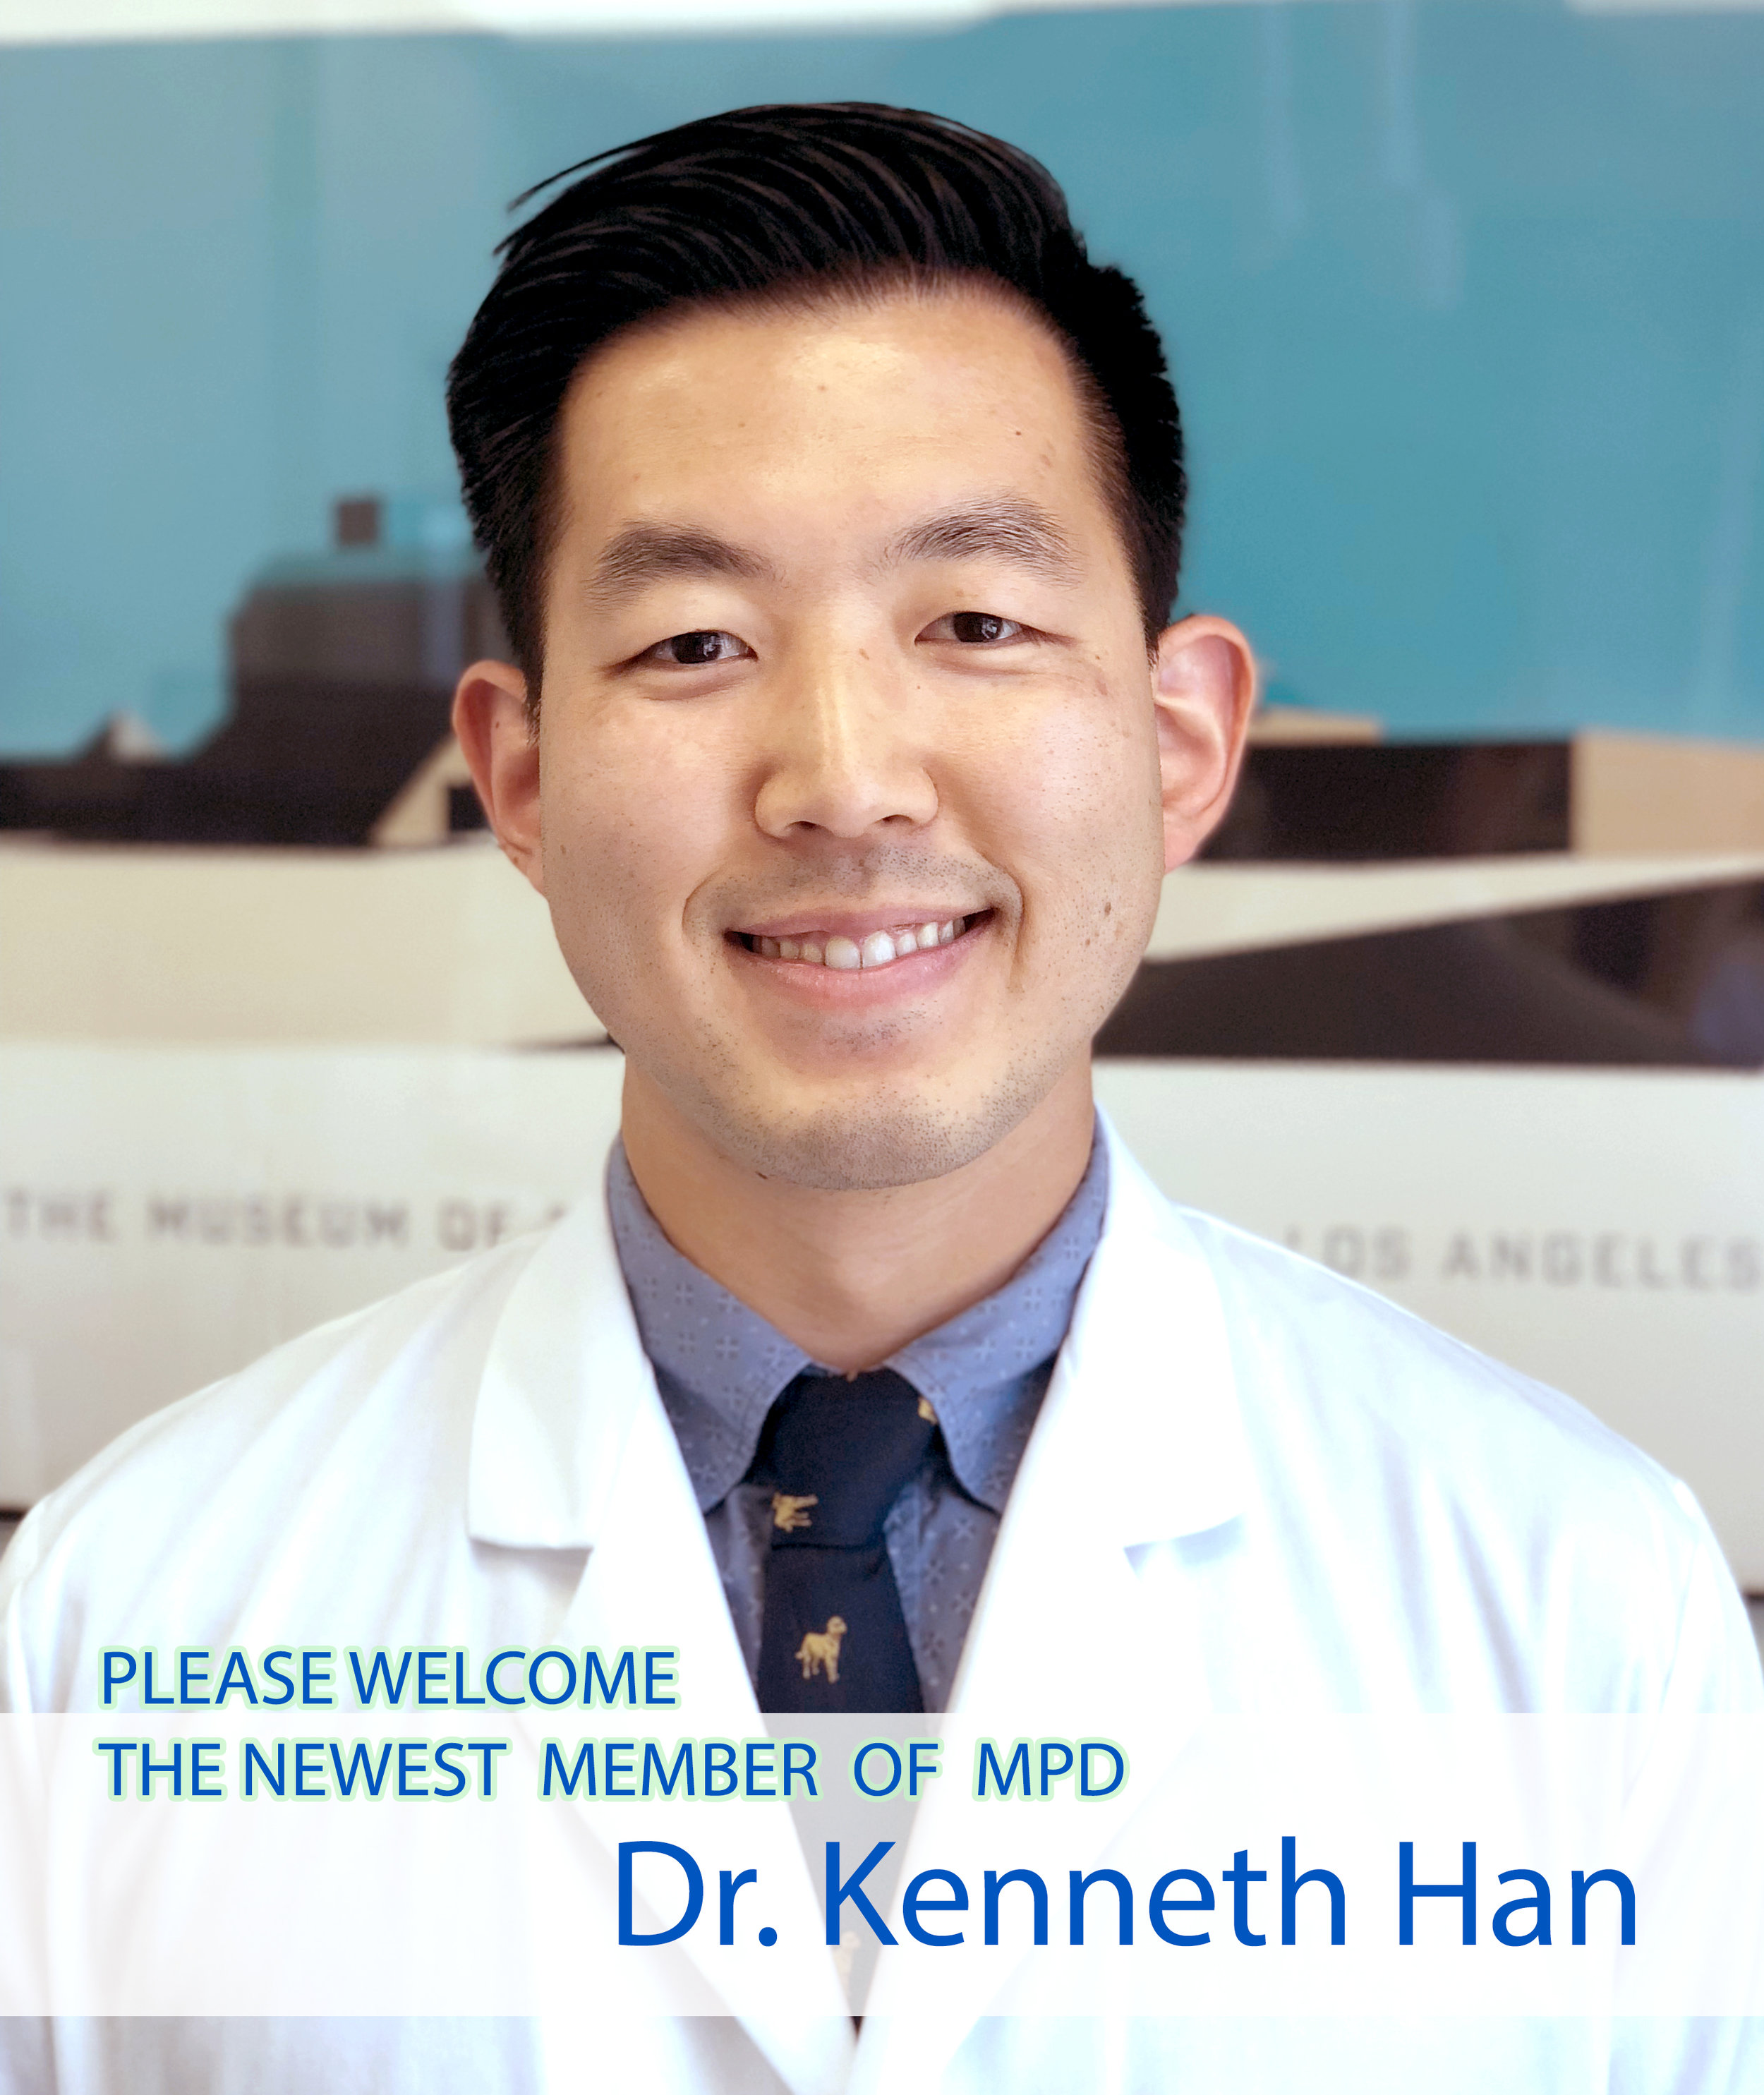 - Dr. Kenneth Han is the most recent addition to our practice this July.  Dr. Han was born and raised in San Francisco, and went to NYU School of Dentistry. Additionally, he devoted two years to pursuing advanced dentistry at the University of the Pacific. We are excited that his meticulous care will be a great asset to our practice. He is also passionate about martial arts and traveling.